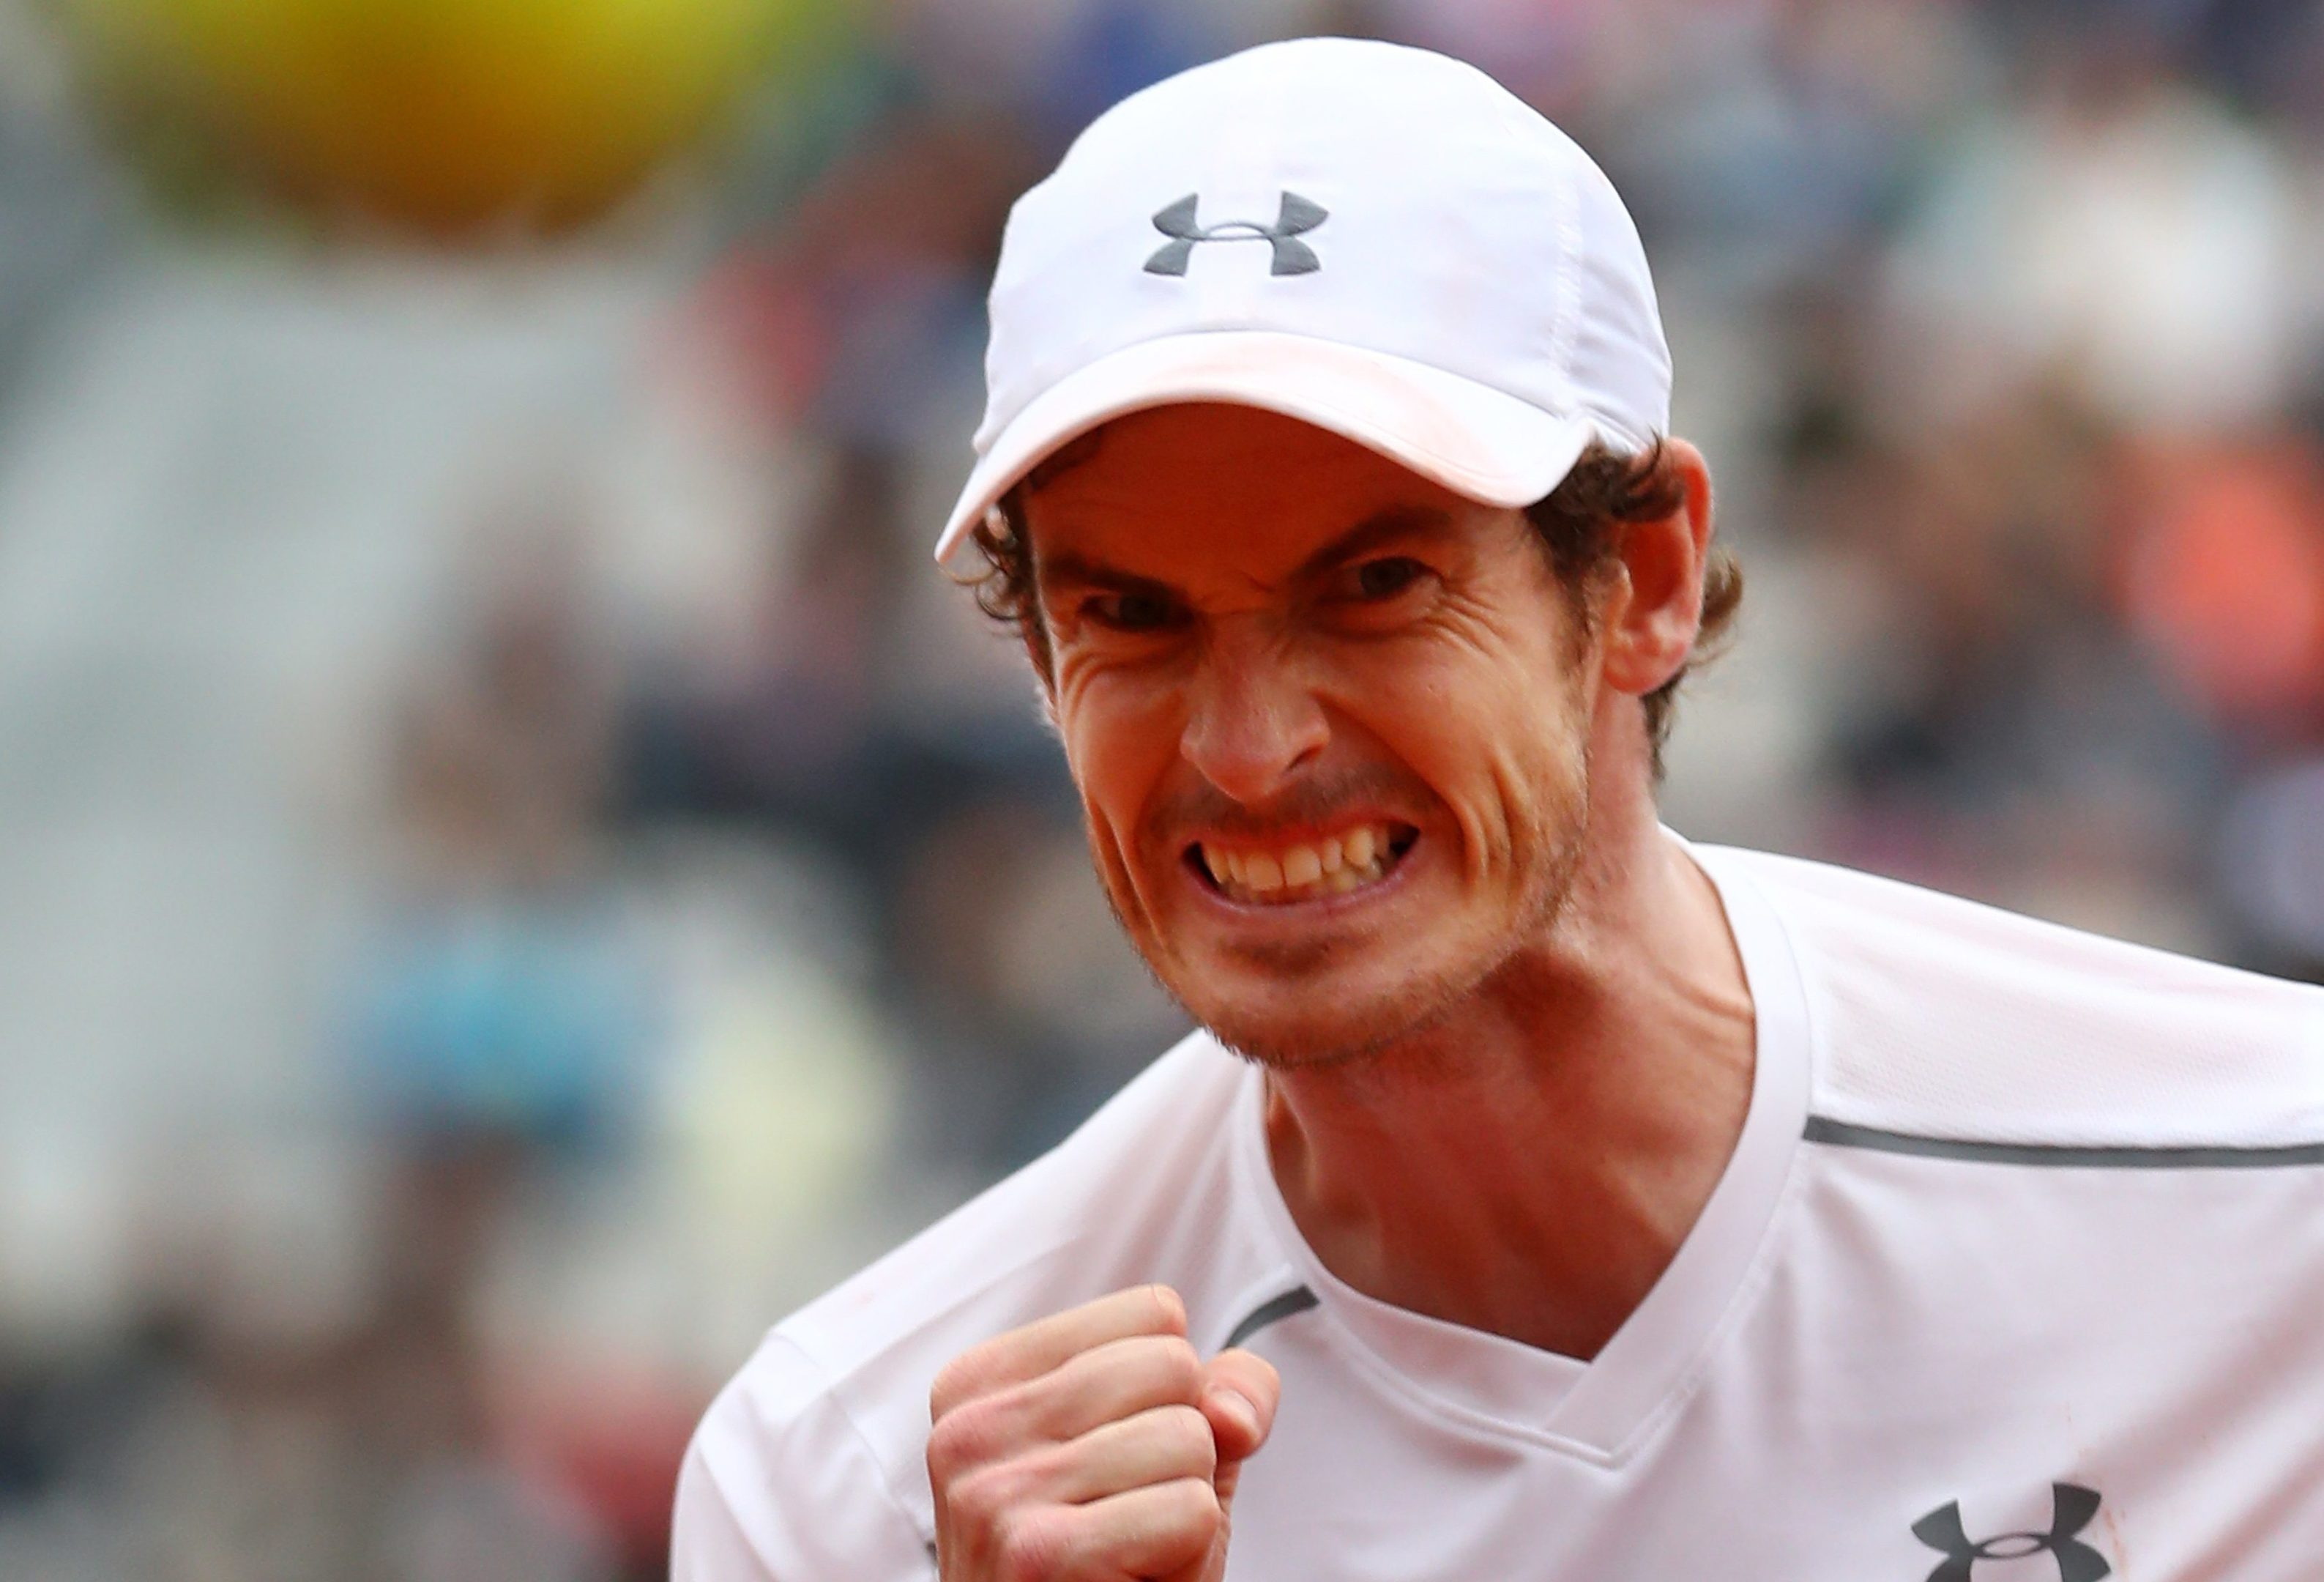 Andy Murray celebrates on his way to victory.